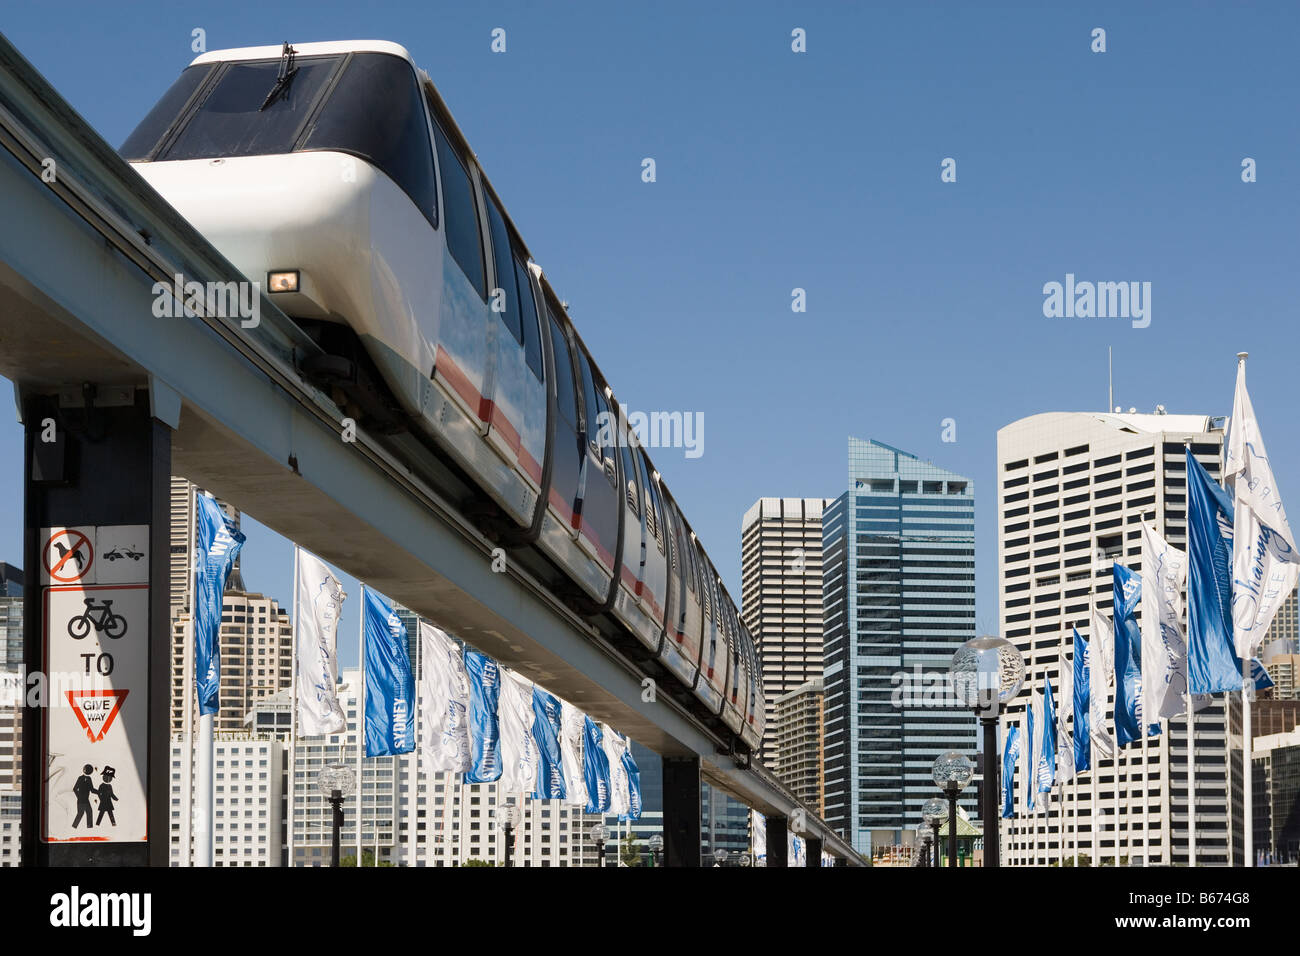 Monorail am darling harbour Stockbild